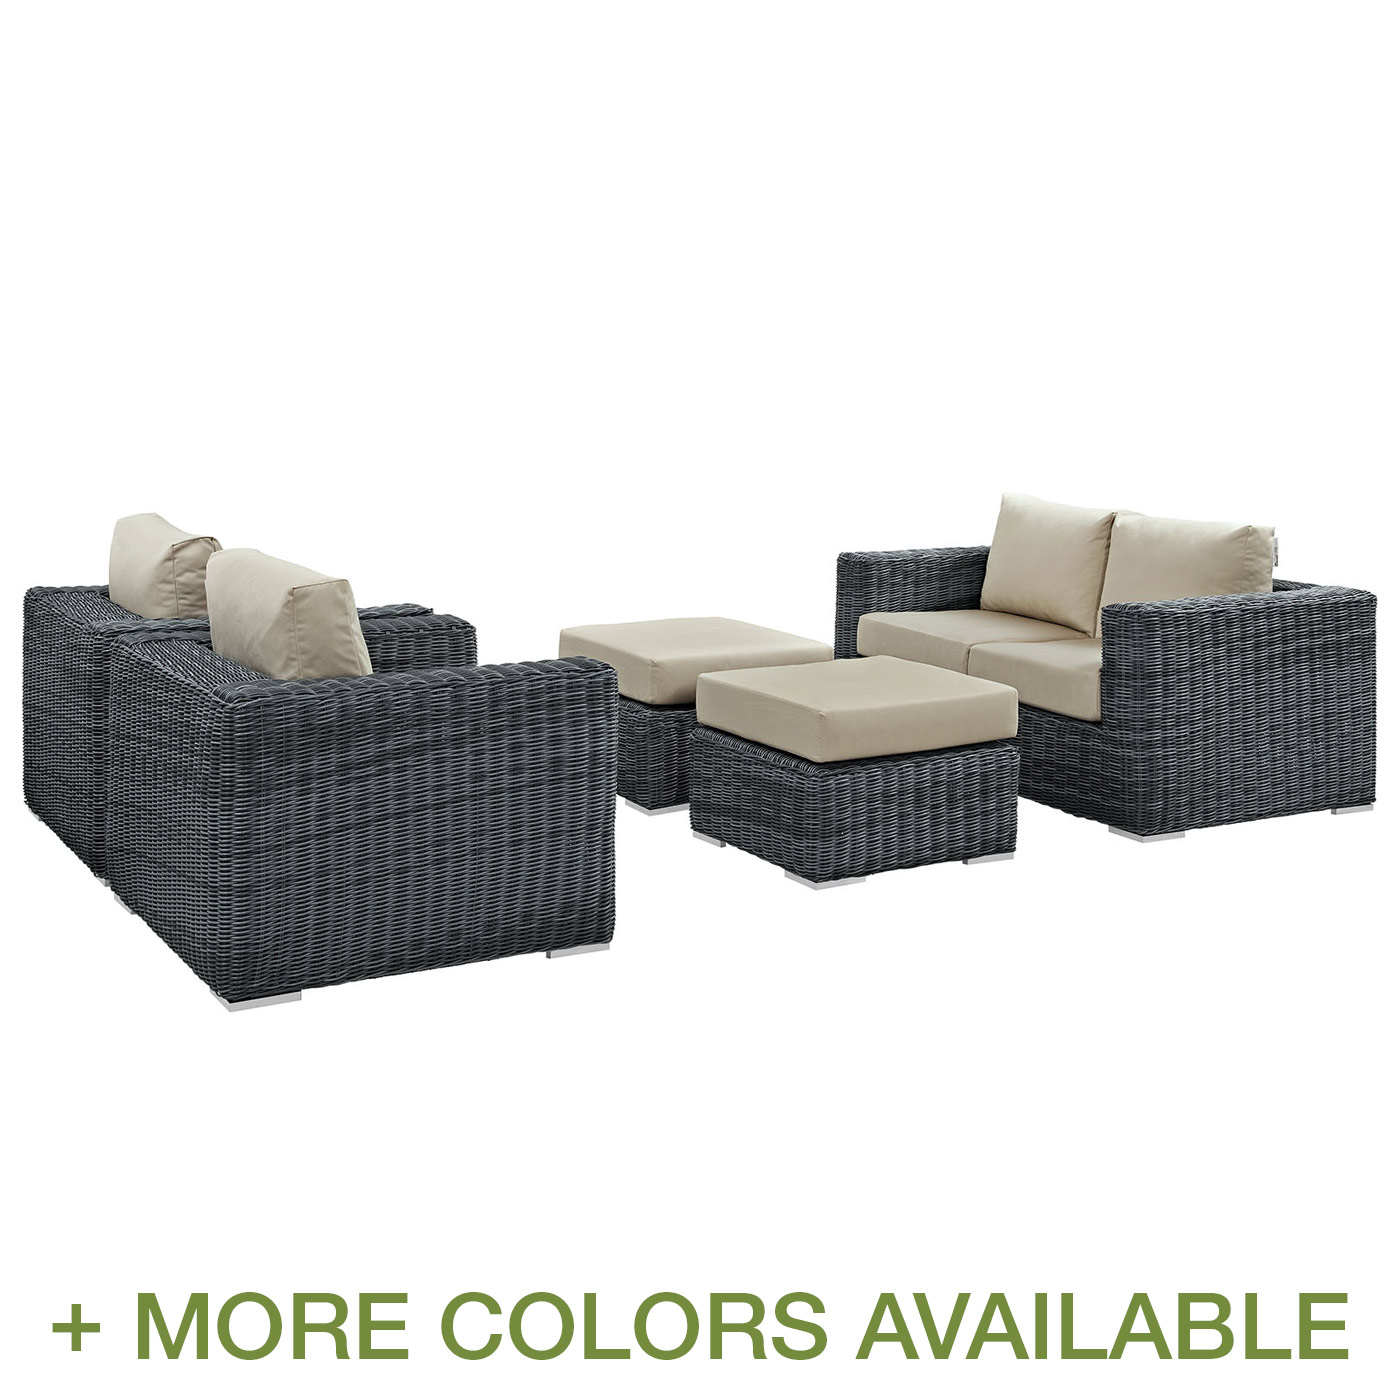 modway summon 5 piece outdoor patio conversation set with cushions free shipping